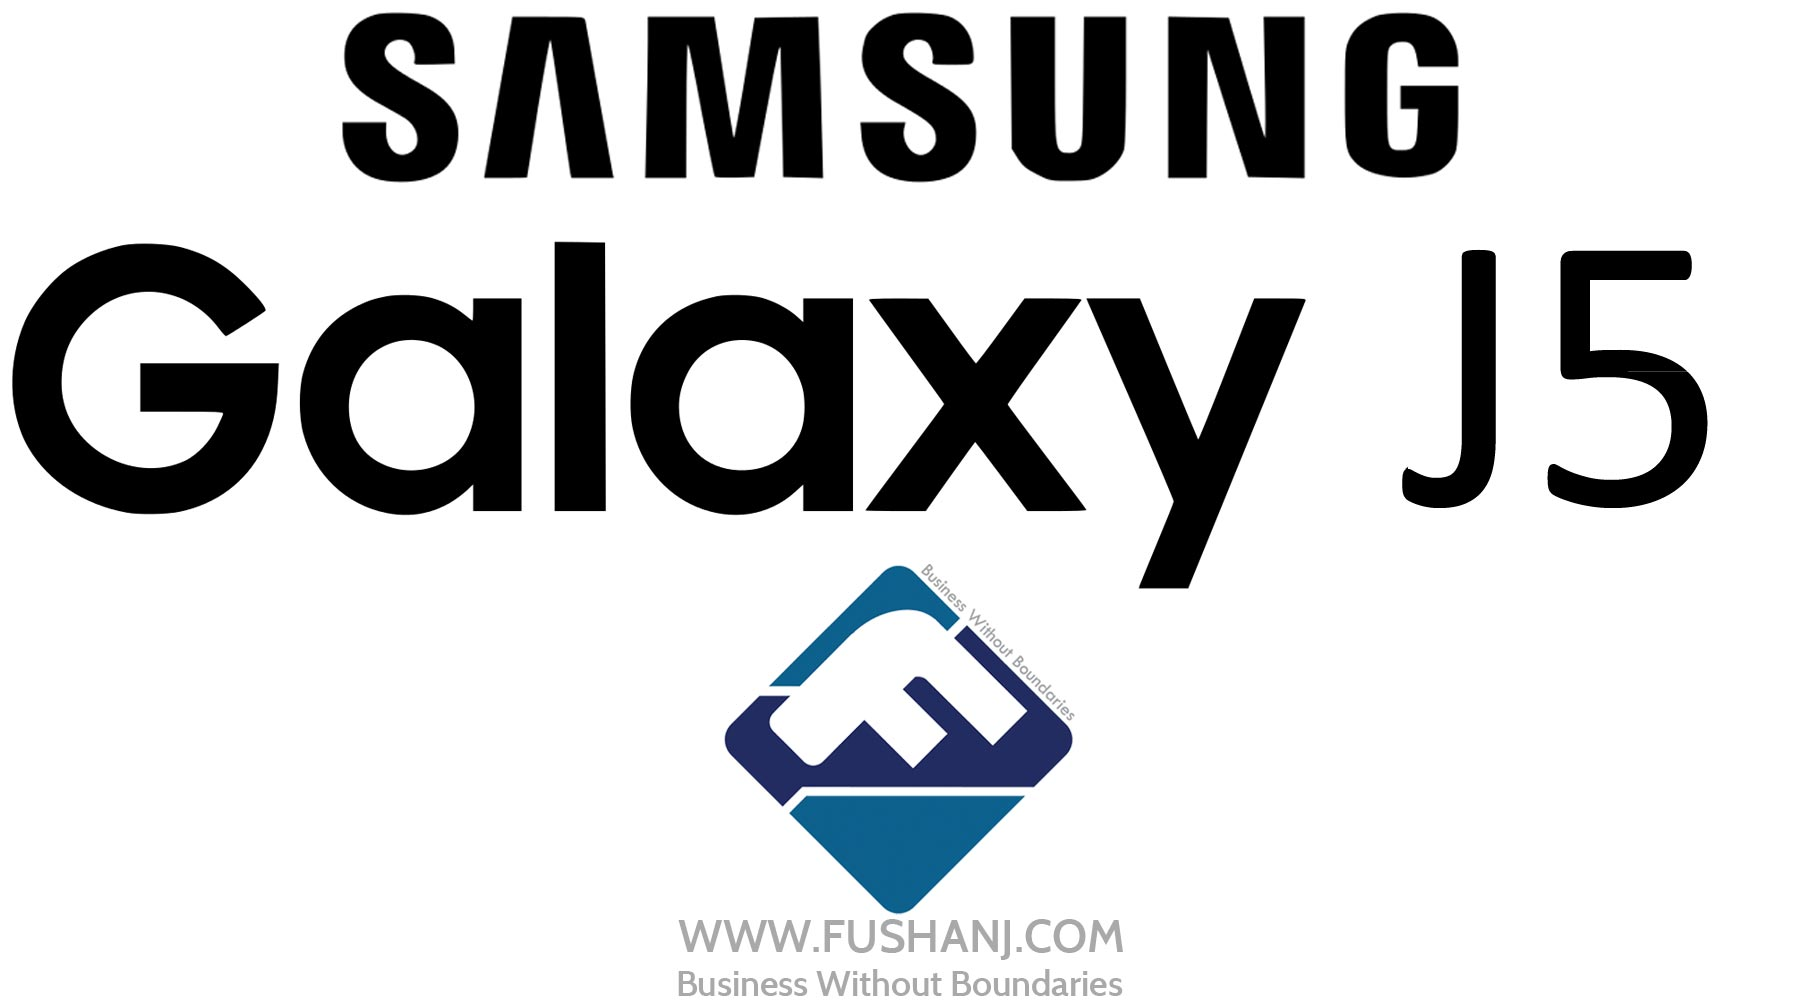 Samsung Galaxy j5 Best Price By Fushanj.com